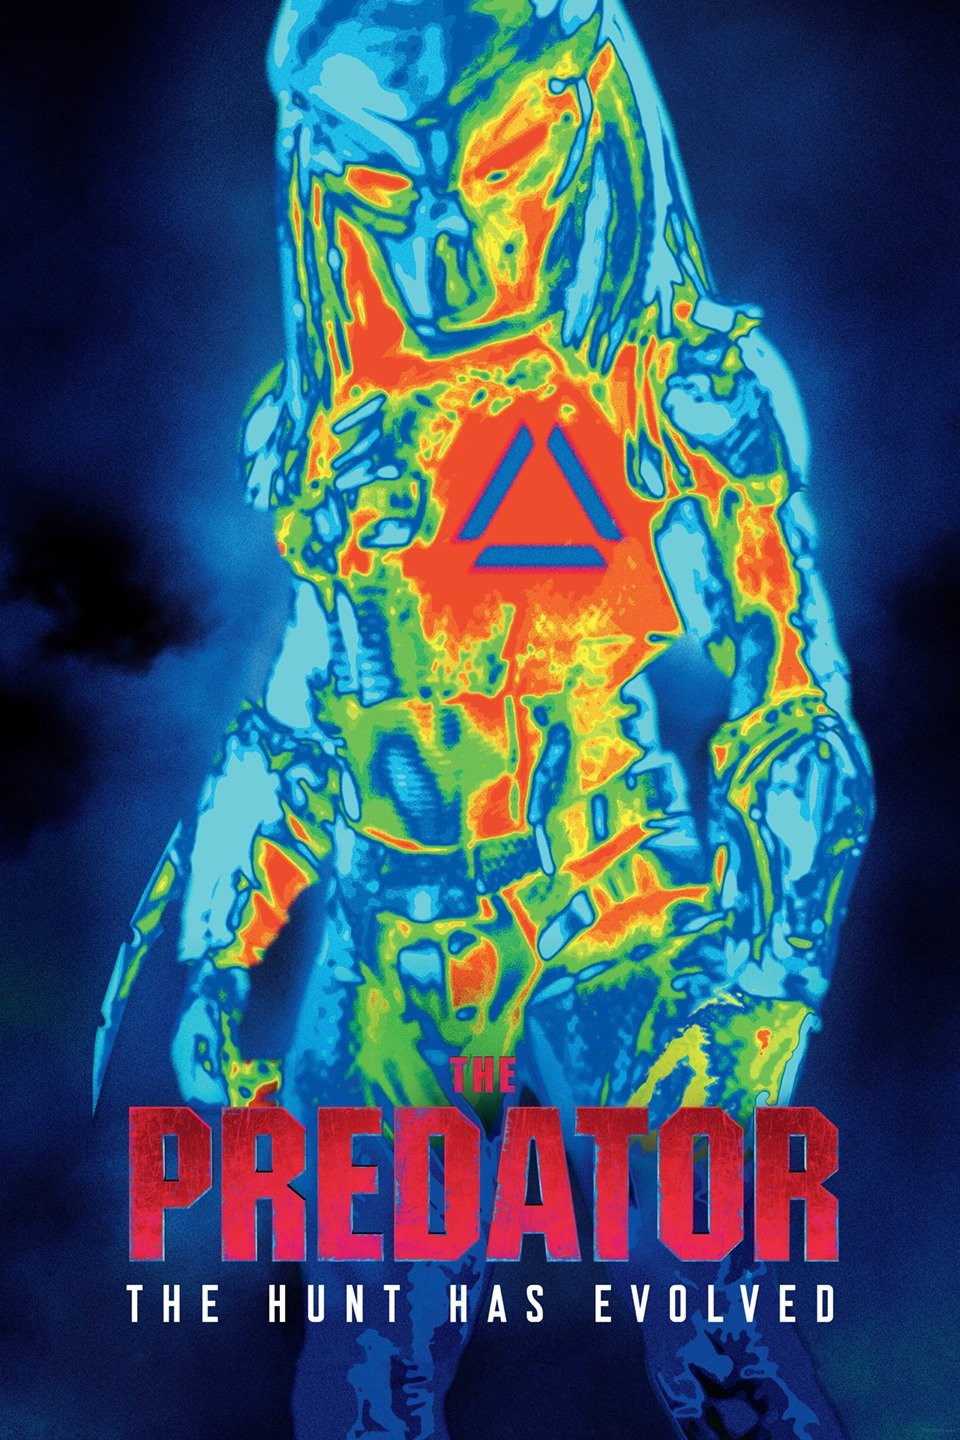 The Predator poster art